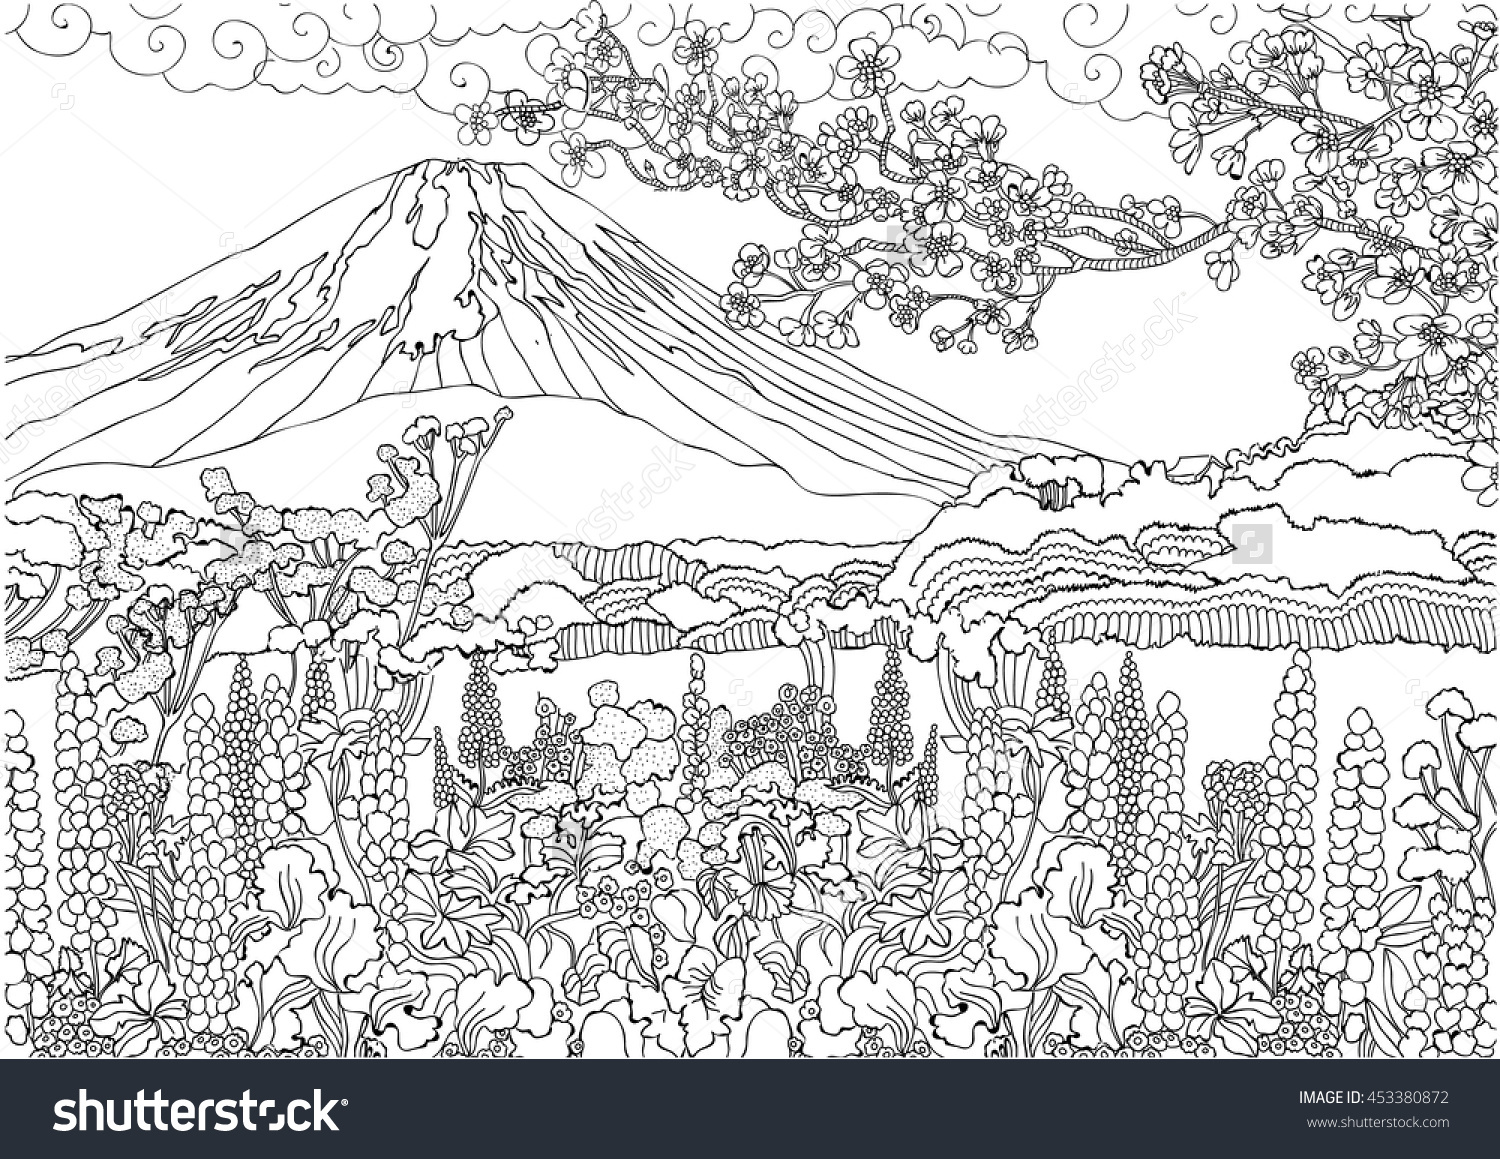 free mountain landscape coloring pages - photo#9